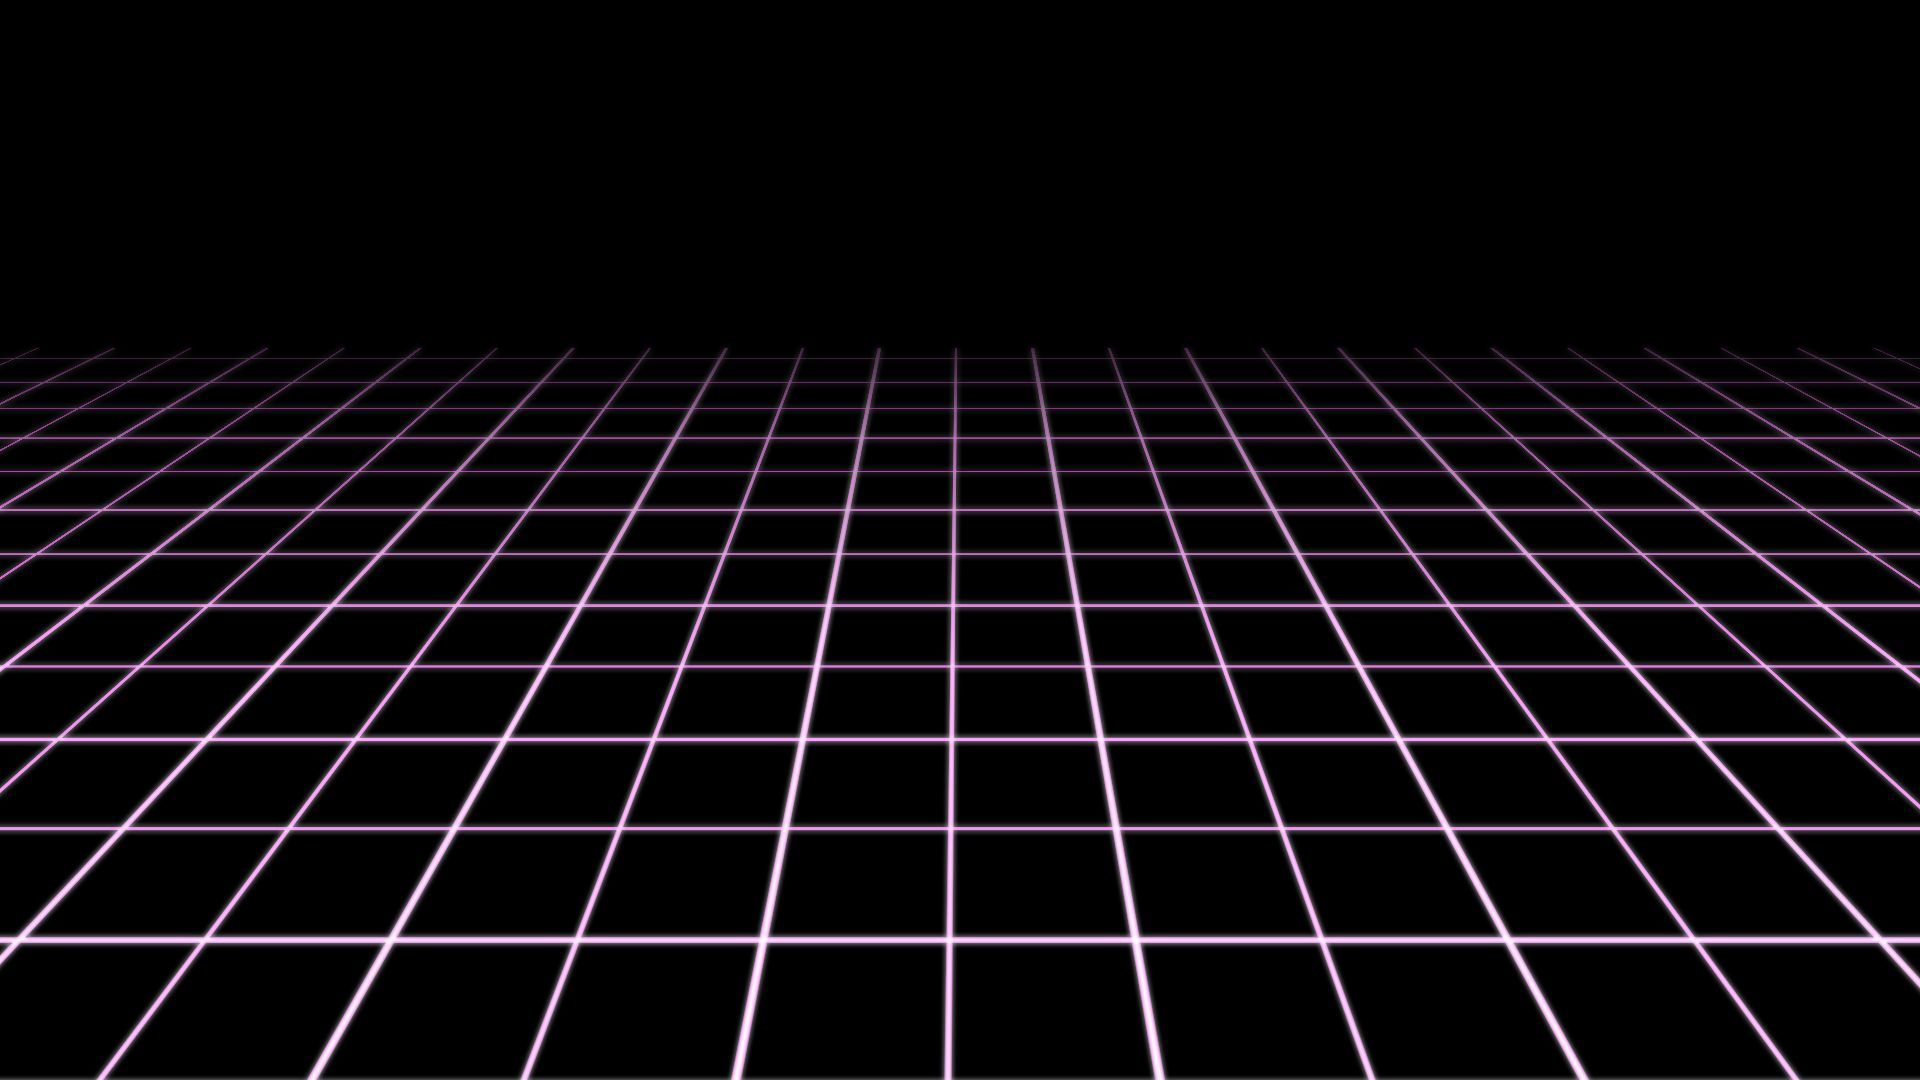 Sustainable energy for all with a 3d grids background grid pink by leafeniel